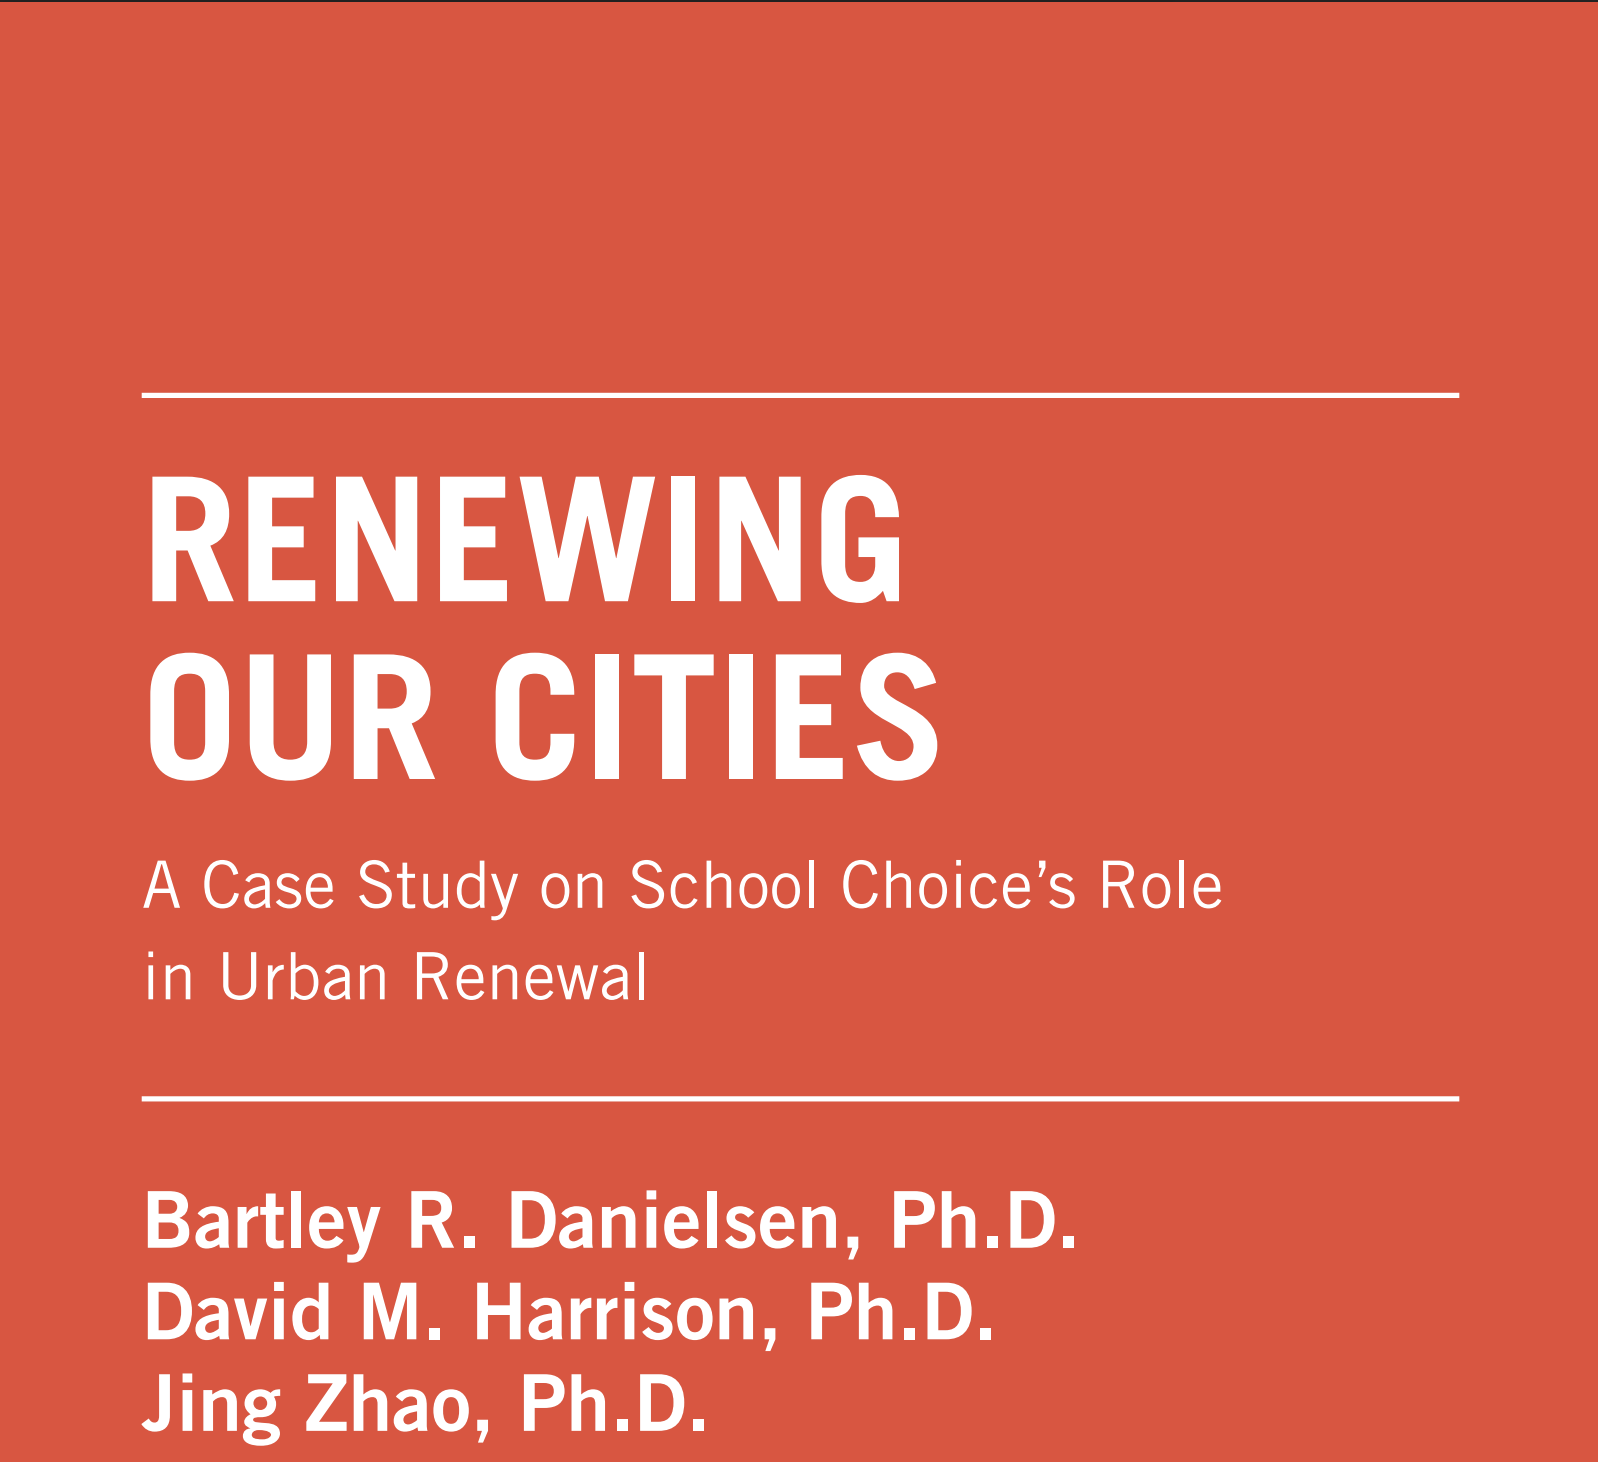 Renewing Our Cities: A Case Study on School Choice's Role in Urban Renewal